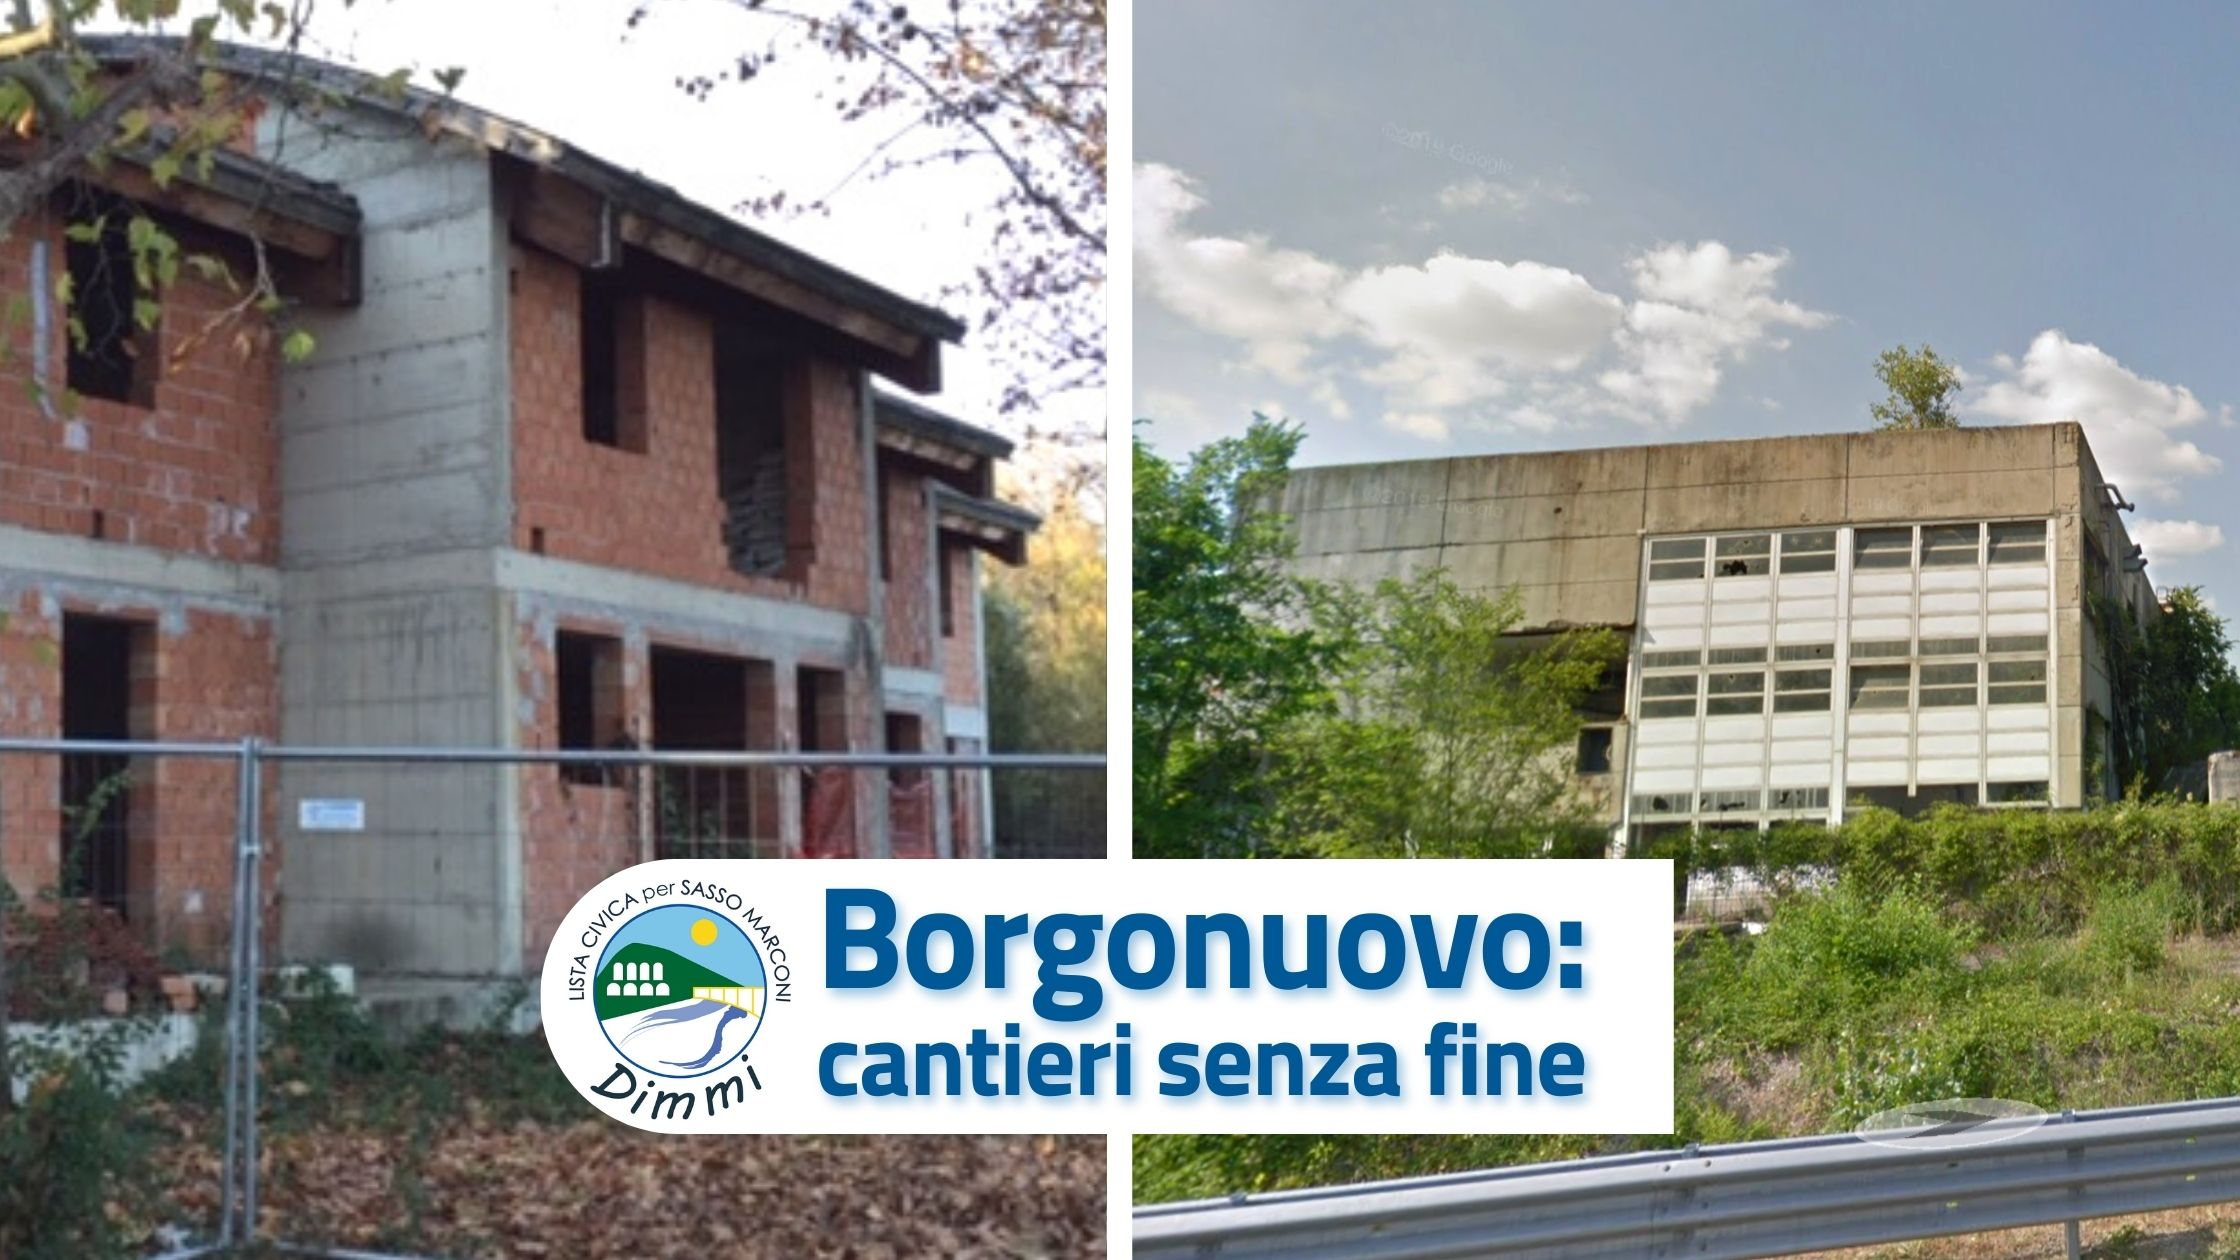 You are currently viewing Borgonuovo: cantieri senza fine